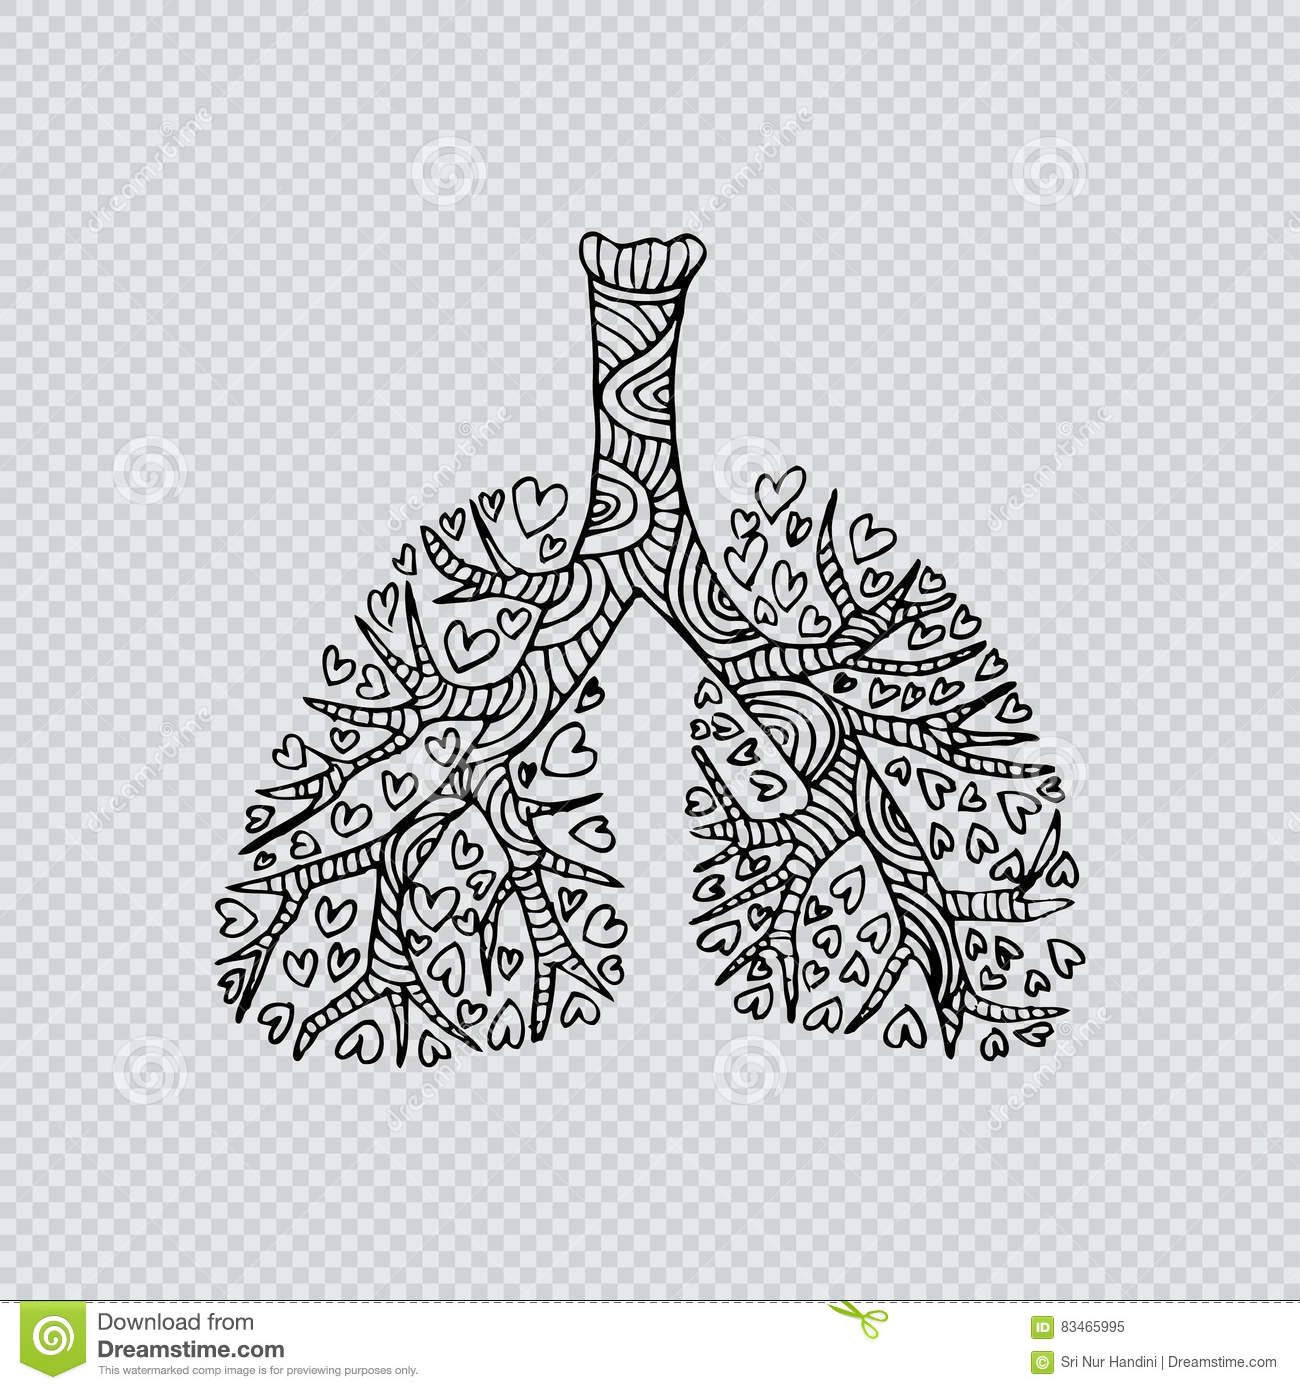 lungs doodle drawing of human organ vector illustration autolungs doodle drawing of human organ stock illustration